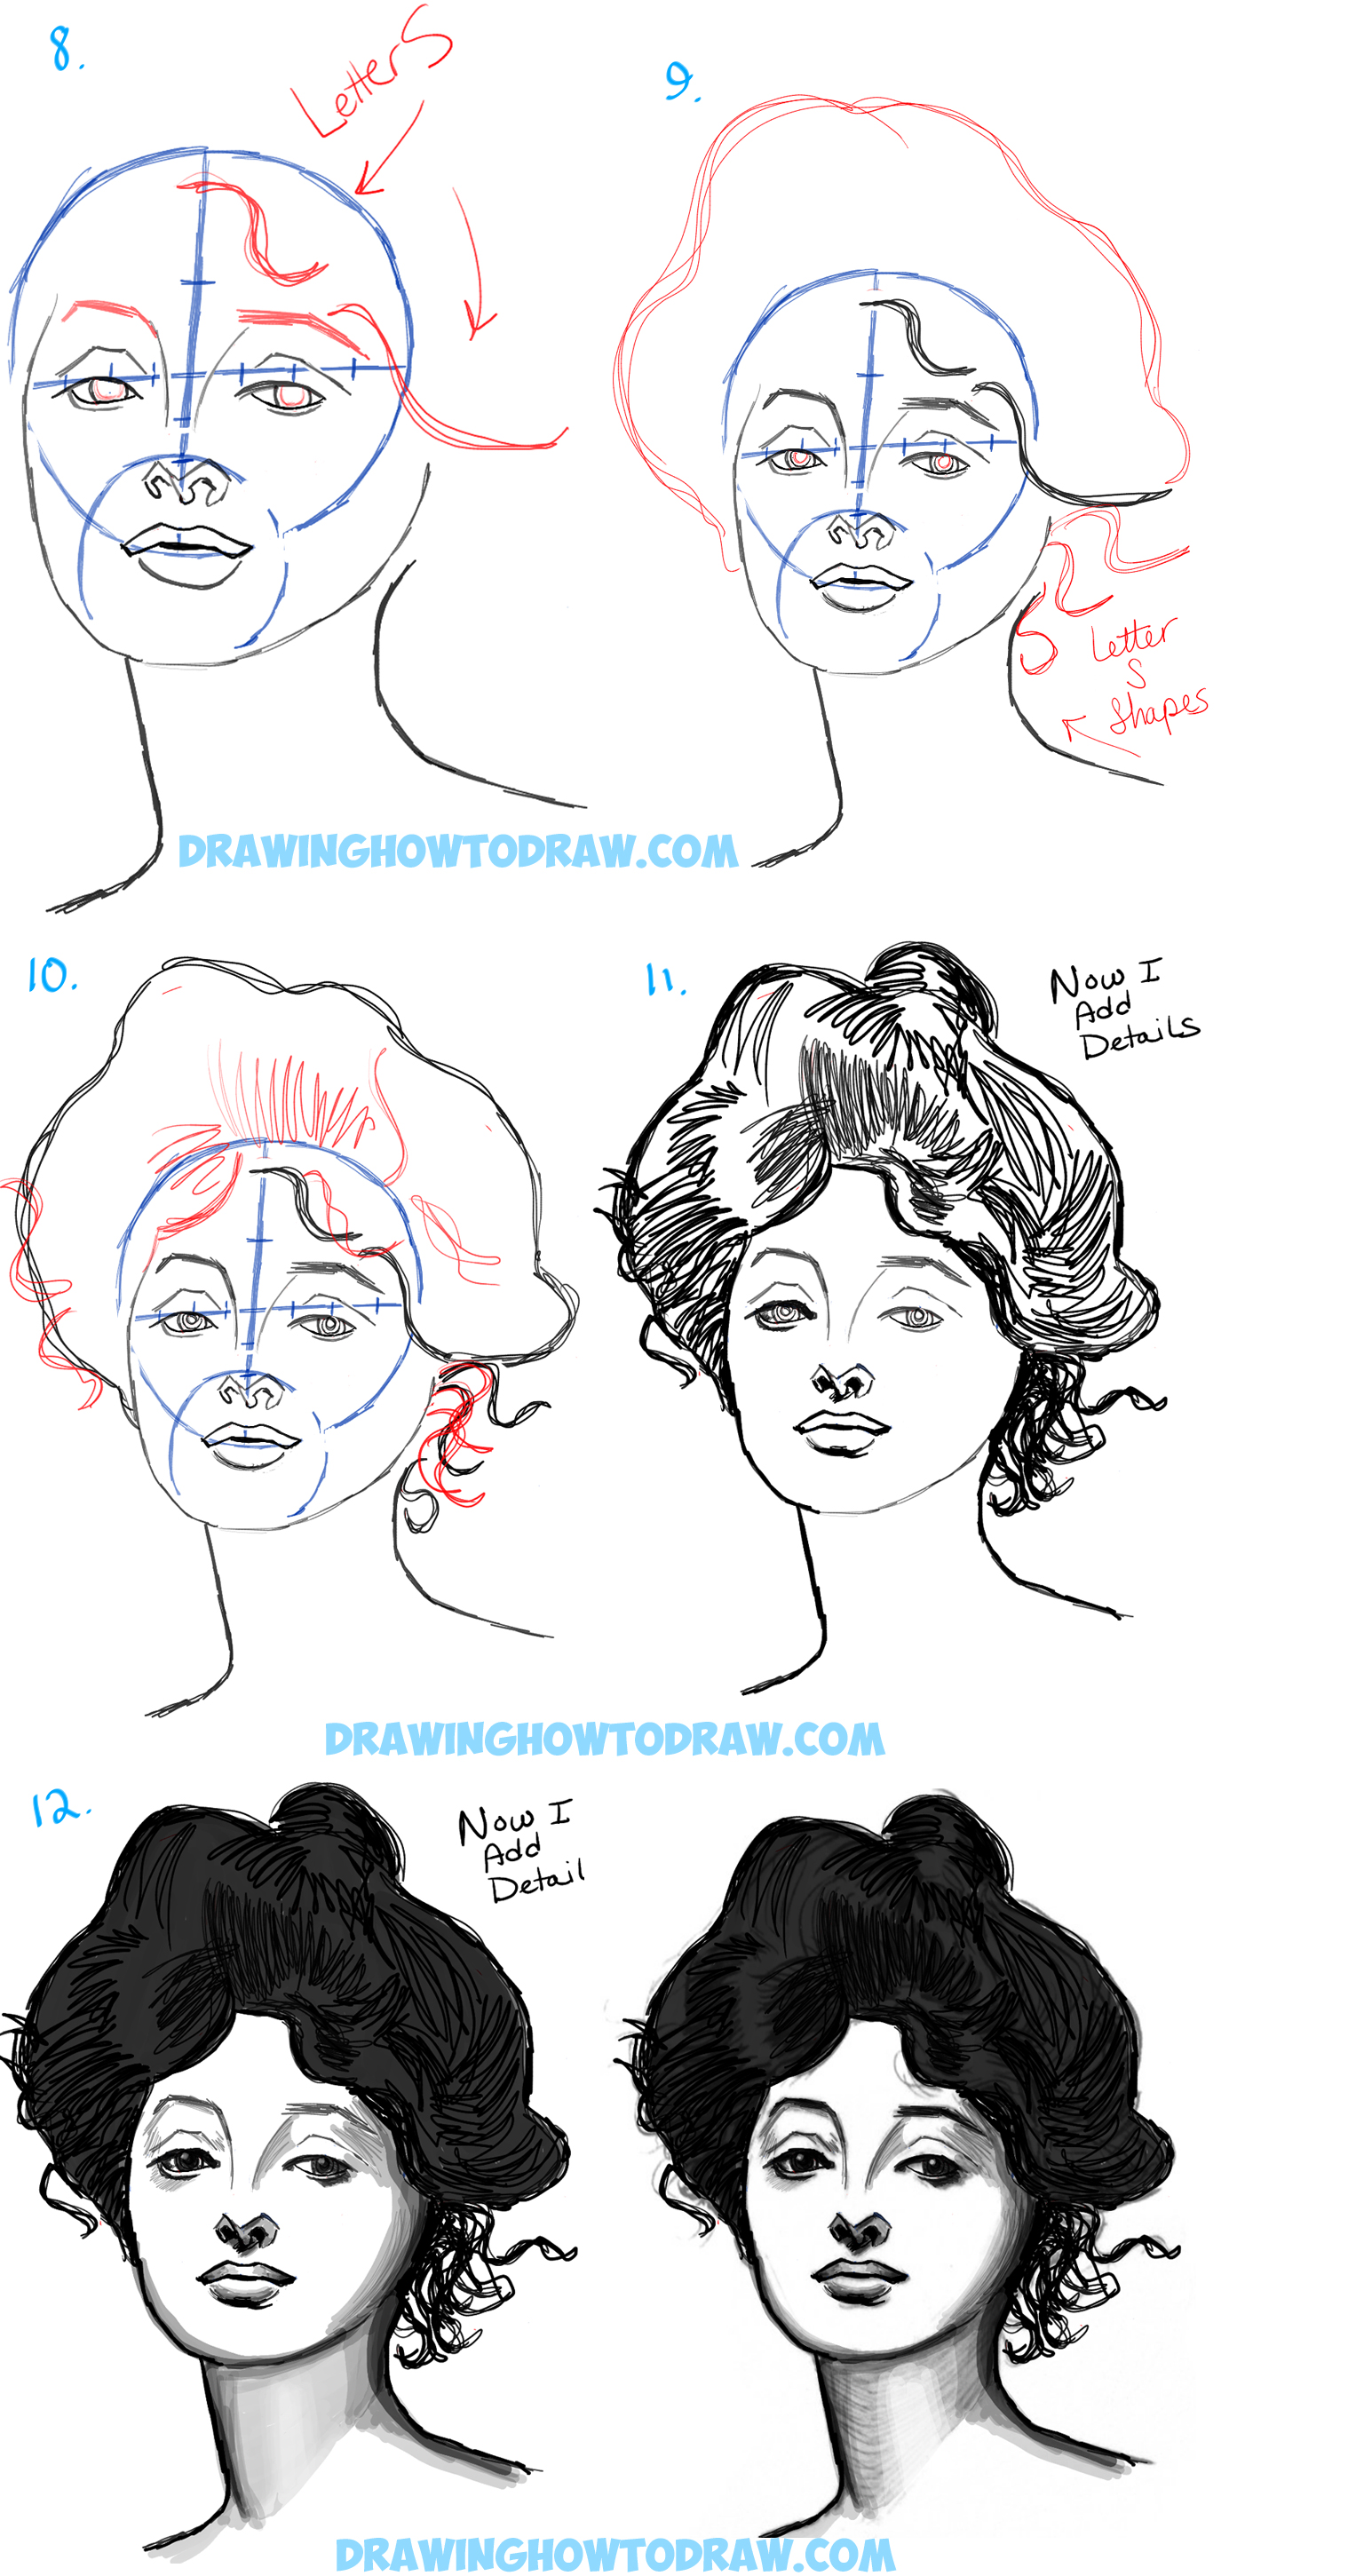 How to Draw Female Faces with a Beautiful Woman's Portrait Tutorial